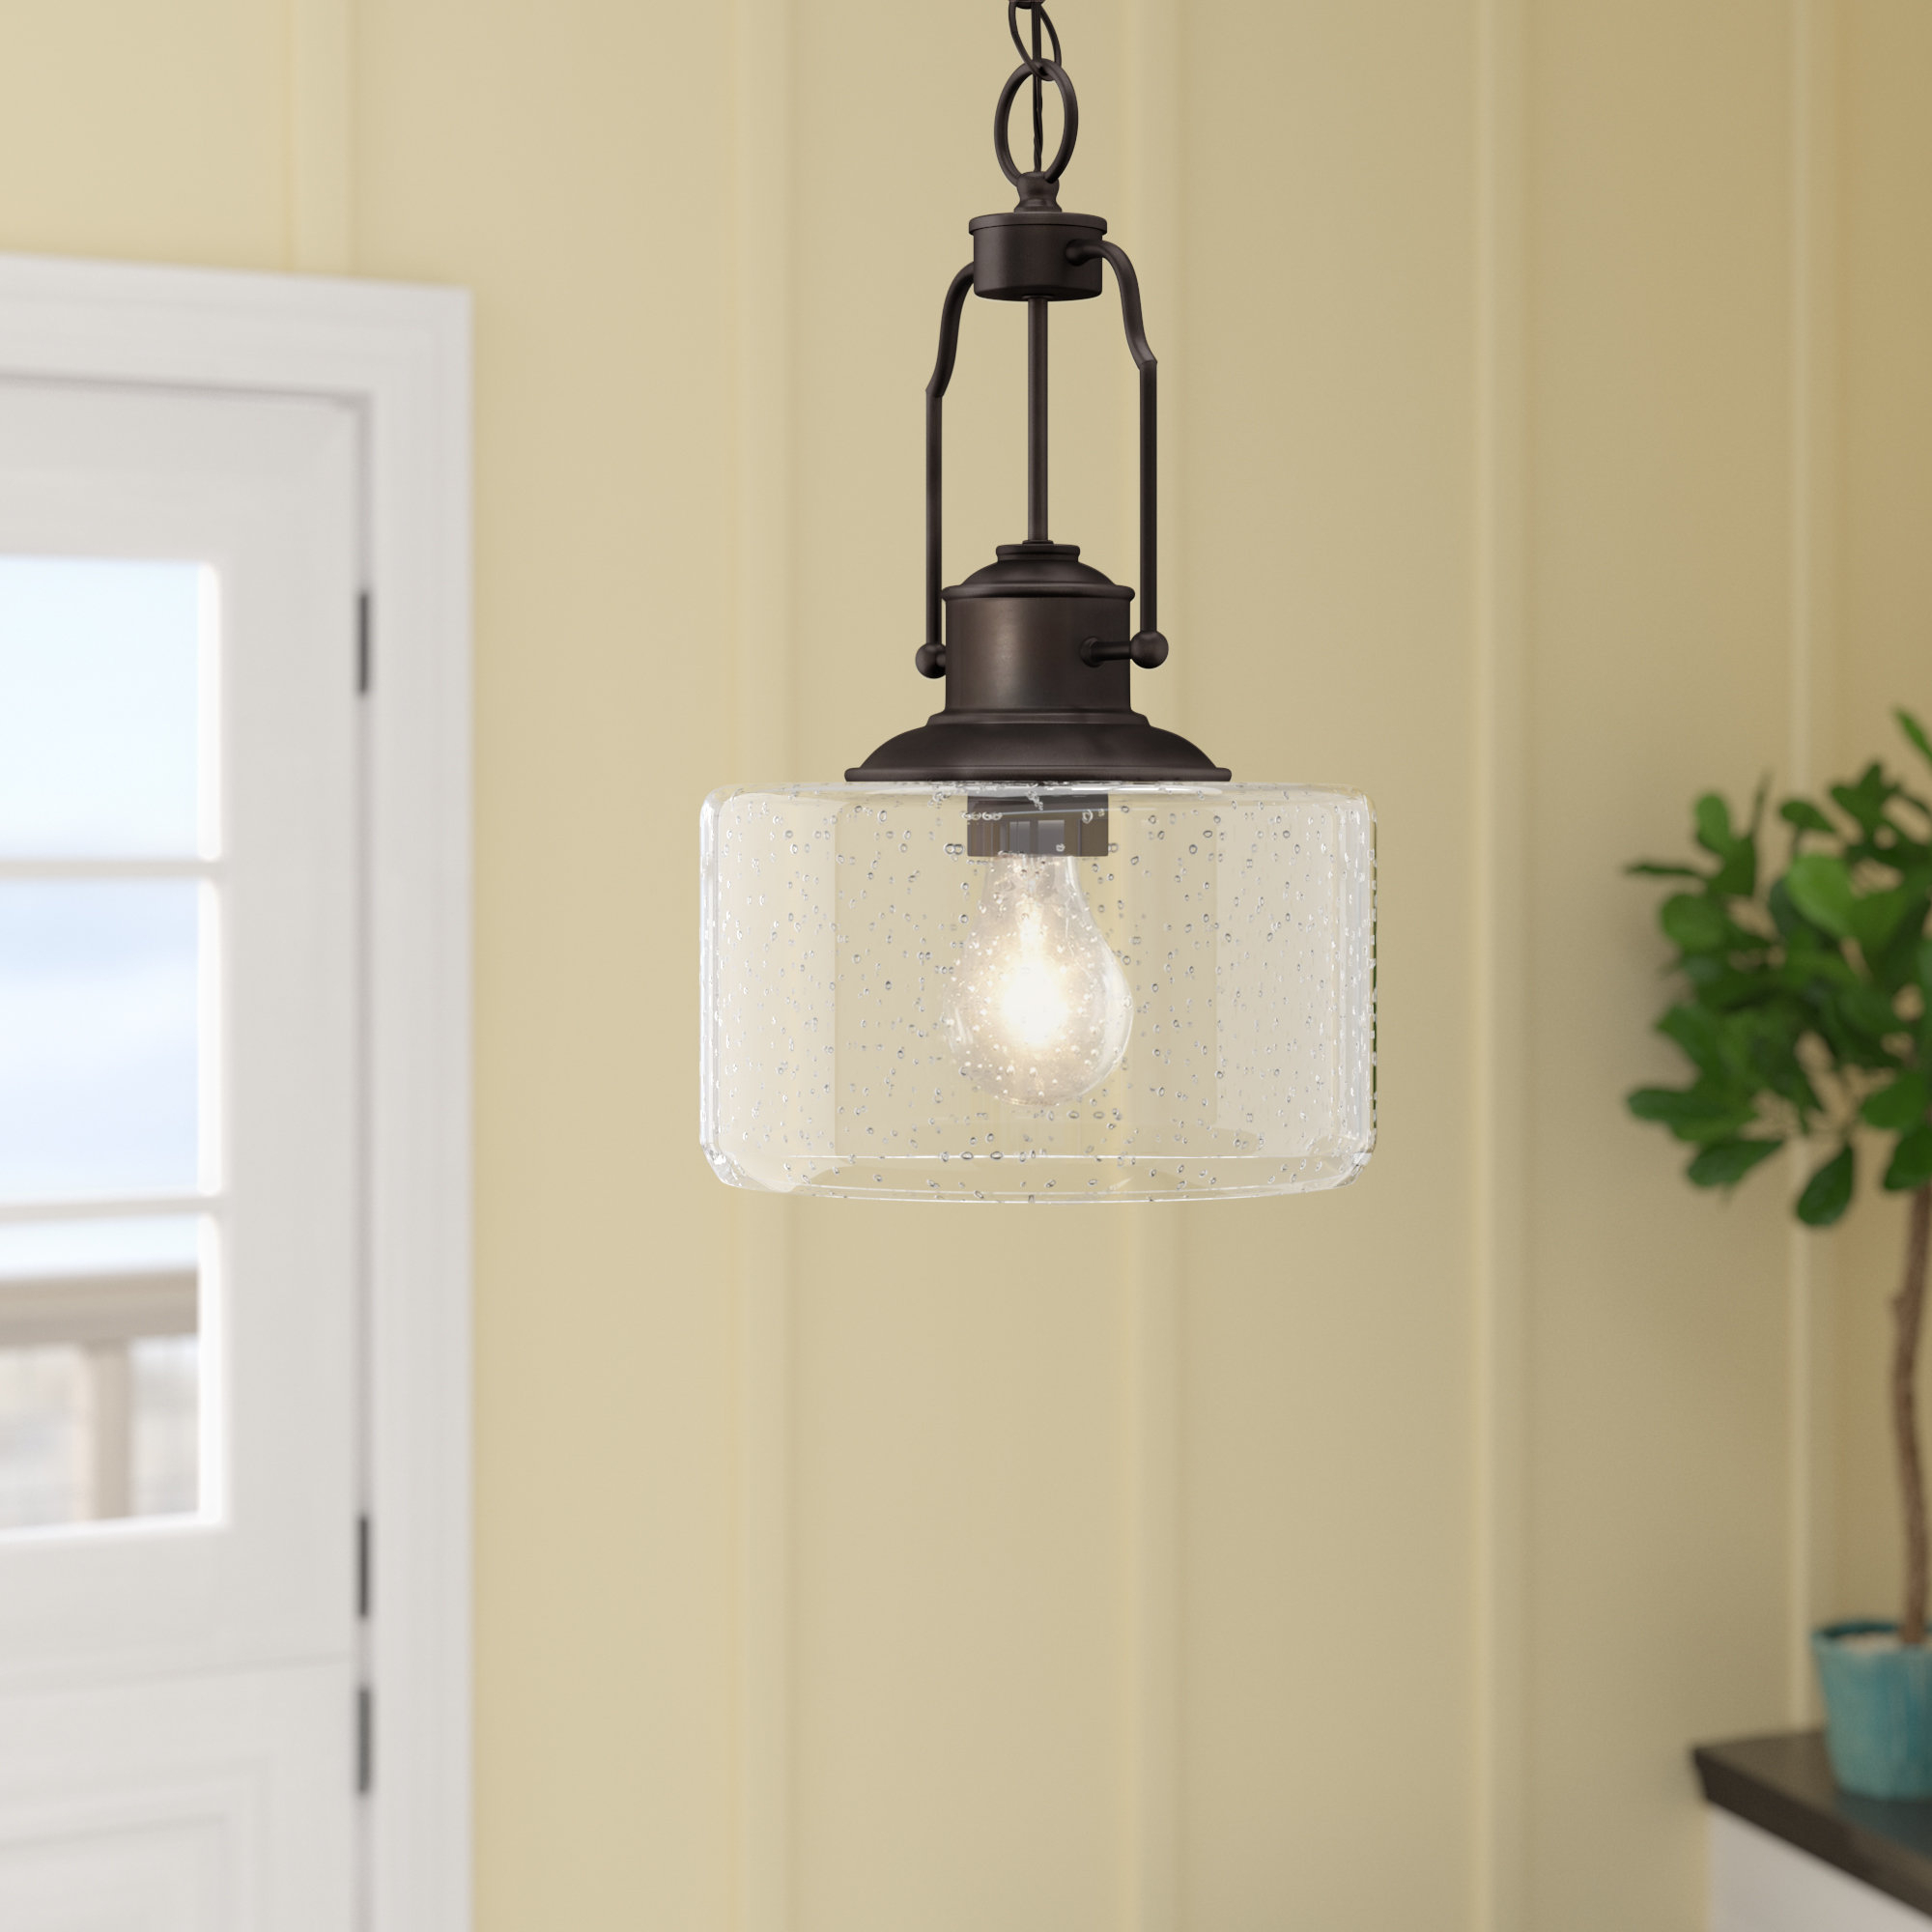 1 Light Drum Pendant With Regard To Moyer 1 Light Single Cylinder Pendants (Gallery 24 of 30)